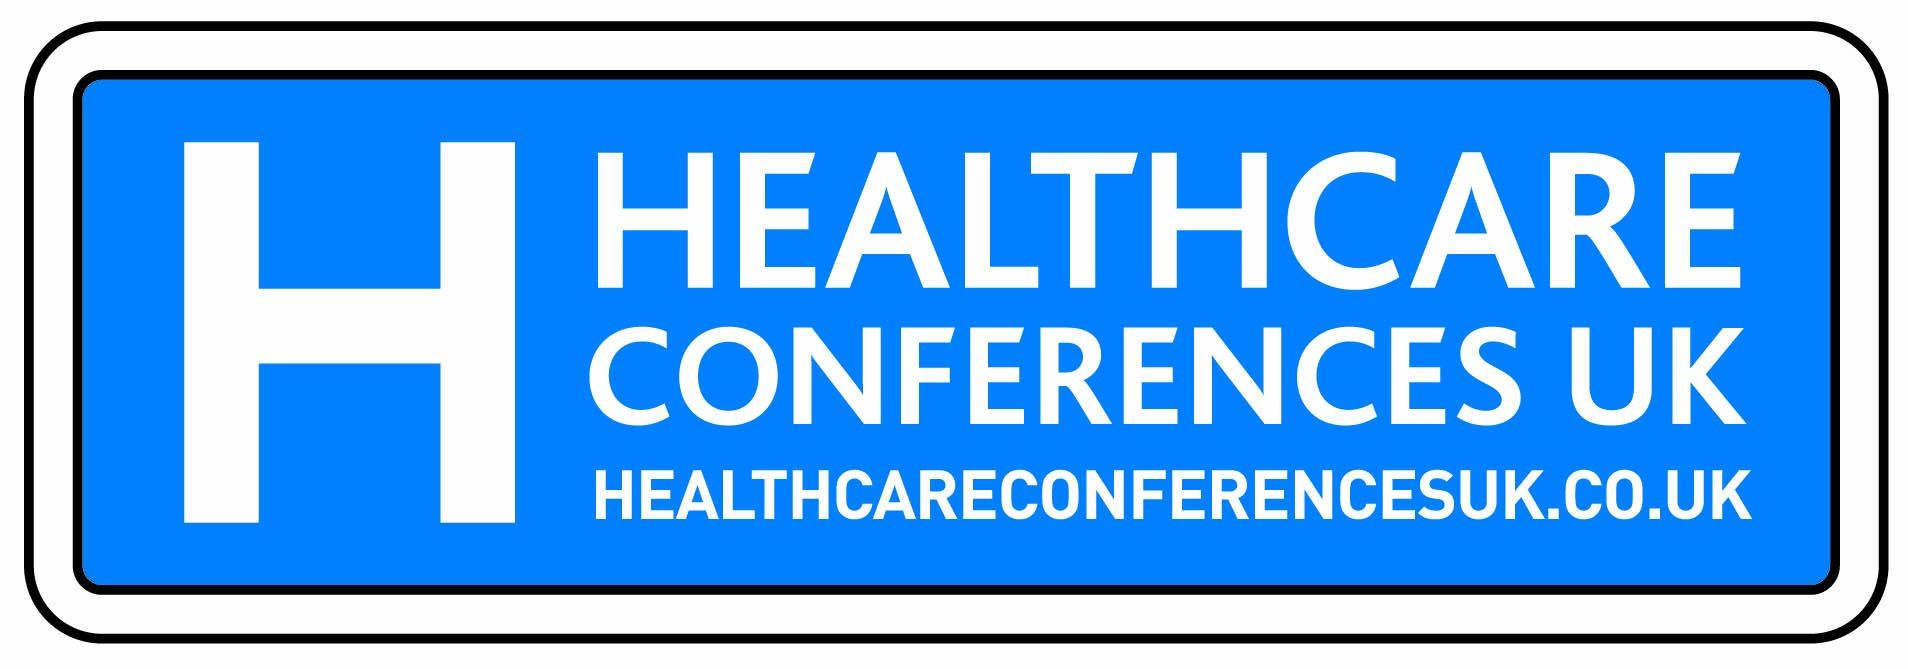 Healthcare Conferences UK (HC-UK) - Healthcare Conferences UK organises and produces high quality healthcare conferences and exhibitions, with a specialist interest in a clinical audience.Steve has presented at a number of events and will chair a conference on the Mental Health Act Review in May 2019.